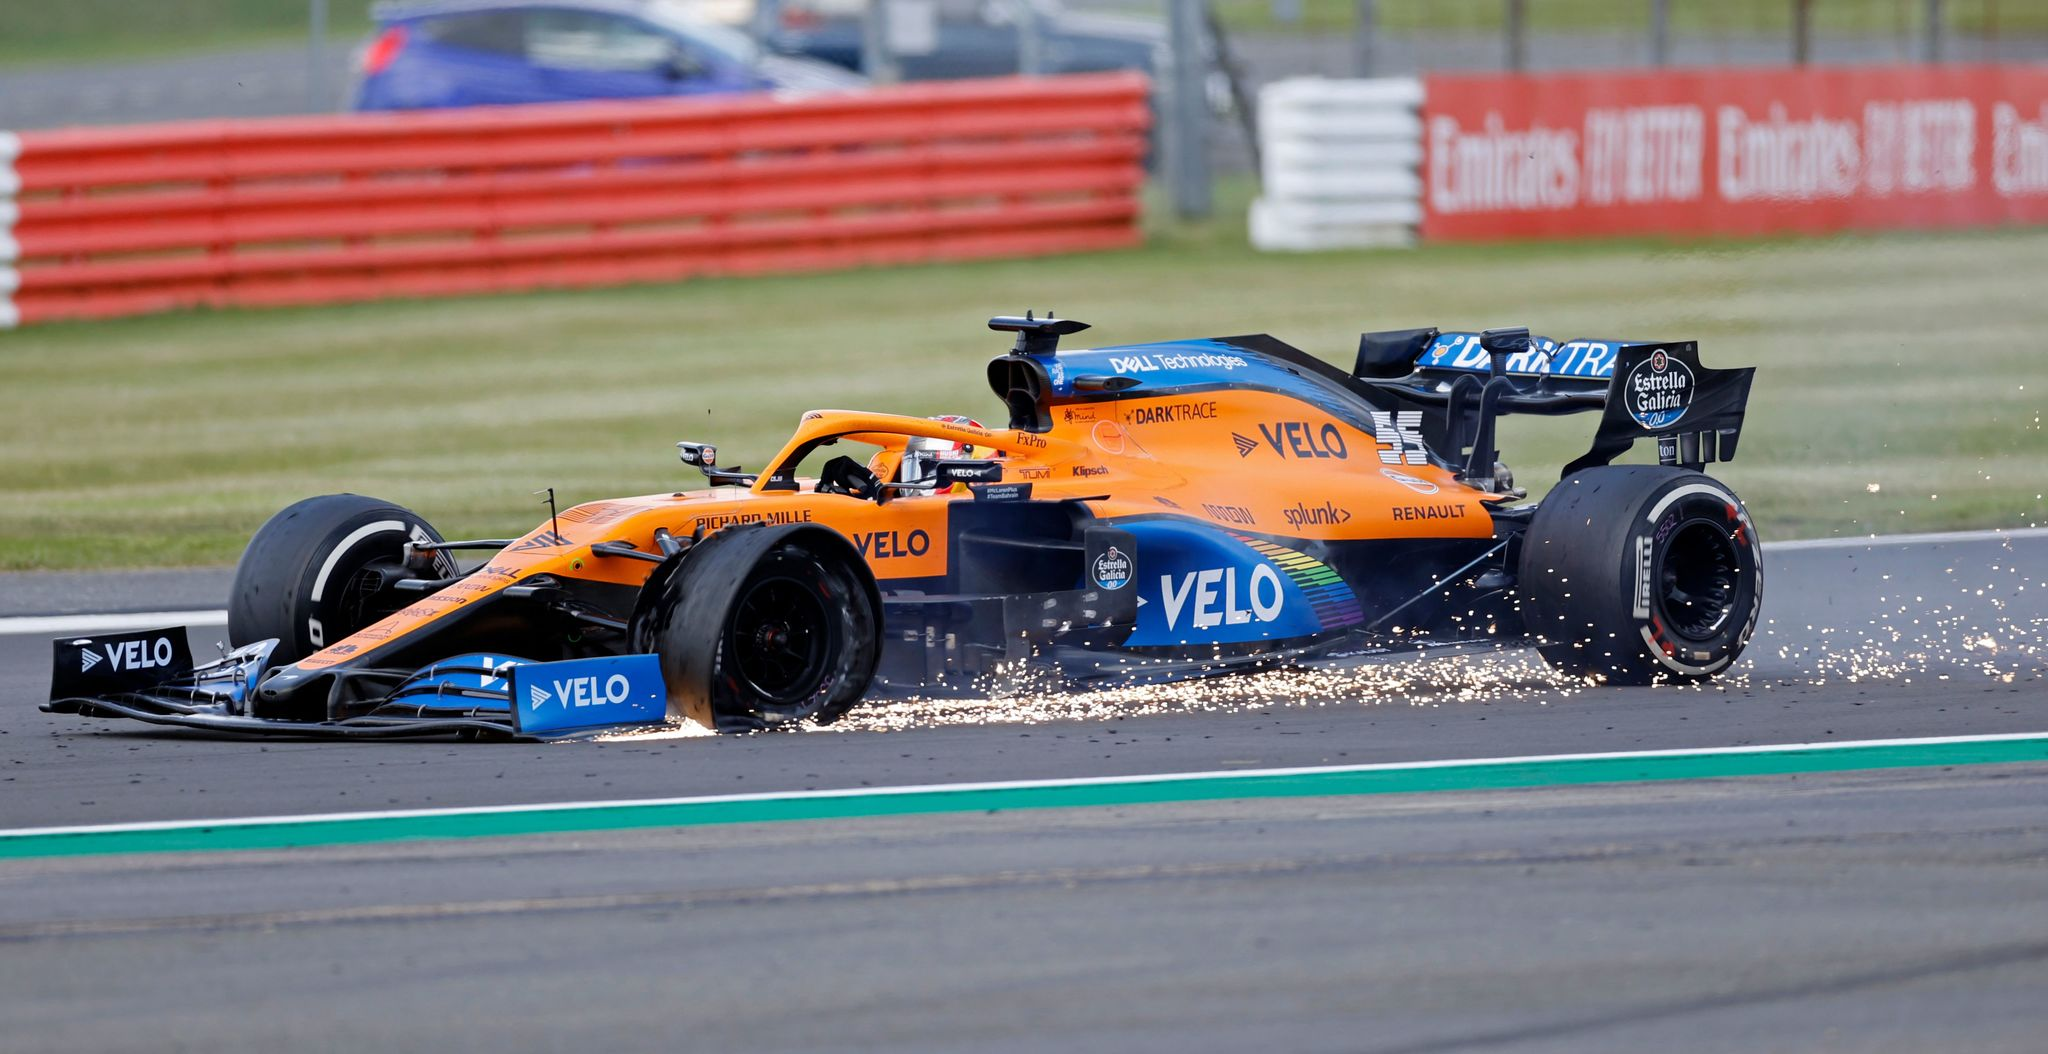 McLarens Spanish driver Carlos Sainz Jr punctures near the finish of the Formula One British Grand Prix at the lt;HIT gt;Silverstone lt;/HIT gt; motor racing circuit in lt;HIT gt;Silverstone lt;/HIT gt;, central England on August 2, 2020. (Photo by ANDREW BOYERS / POOL / AFP)